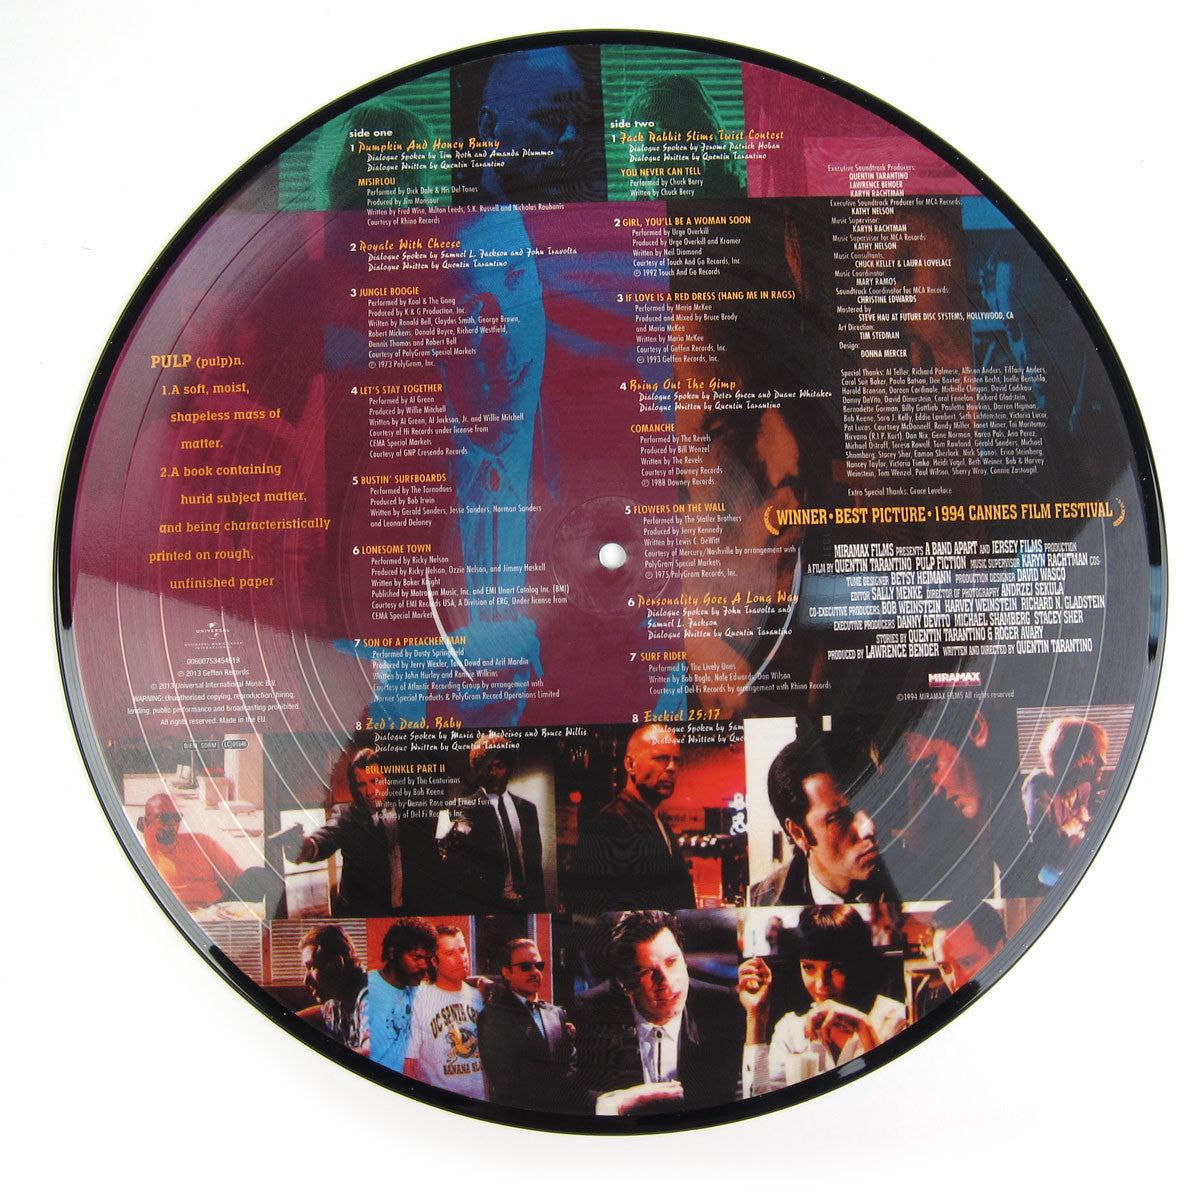 Pulp Fiction: Music From The Motion Picture (Picture Disc) Vinyl LP detail